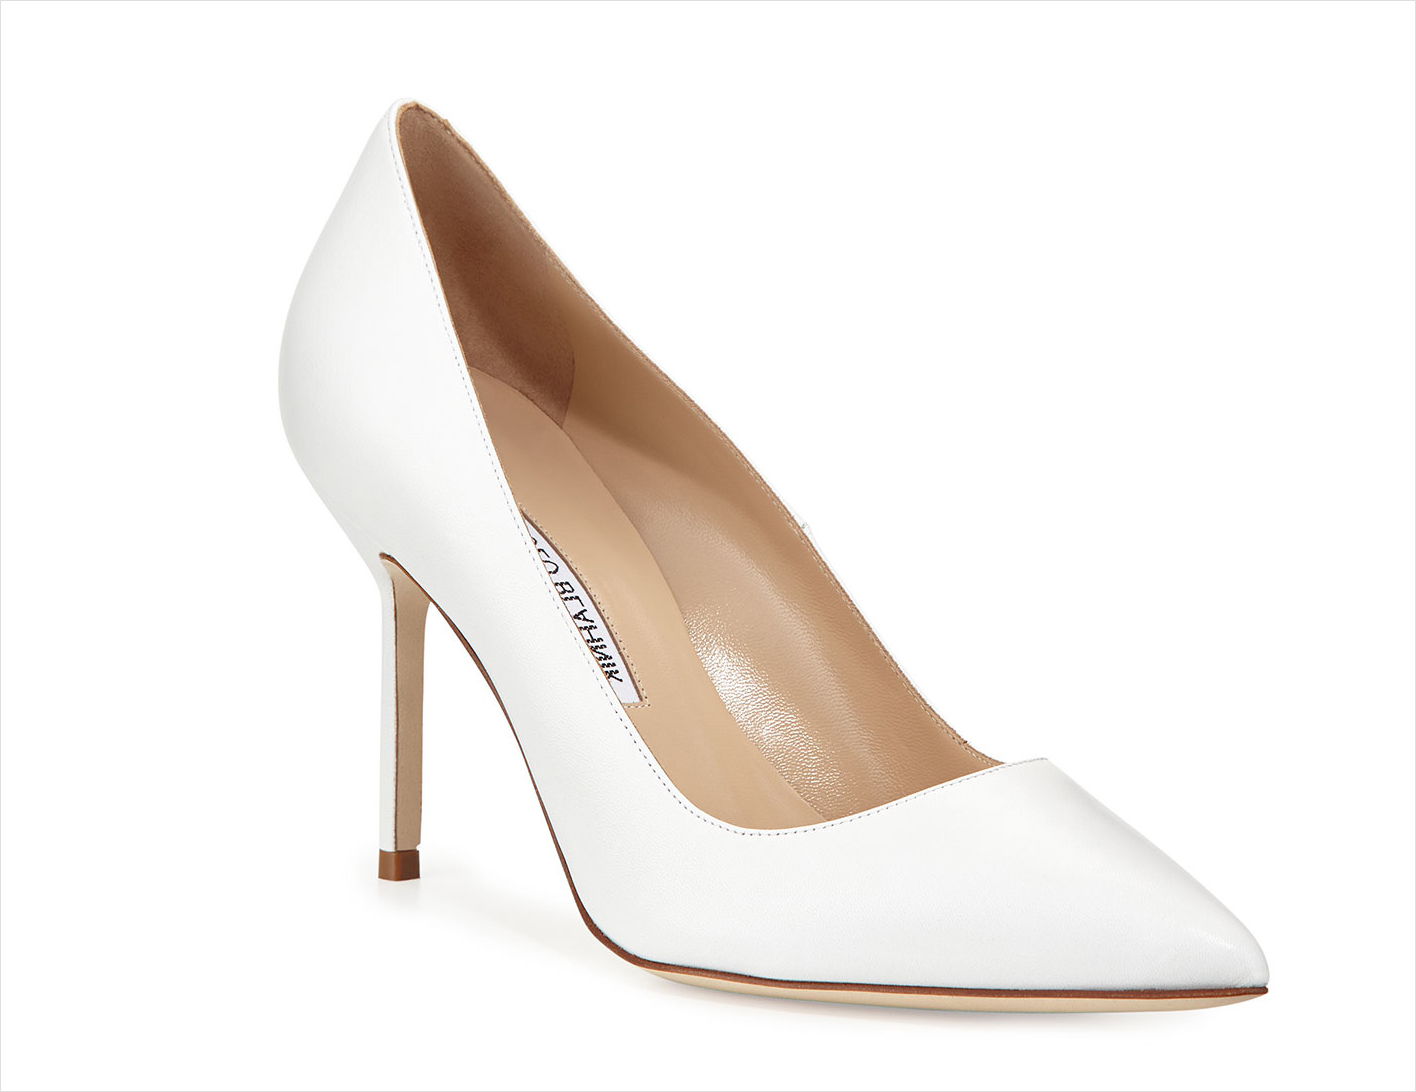 Shop 13 White Wedding Shoes For A Classic Bridal Look